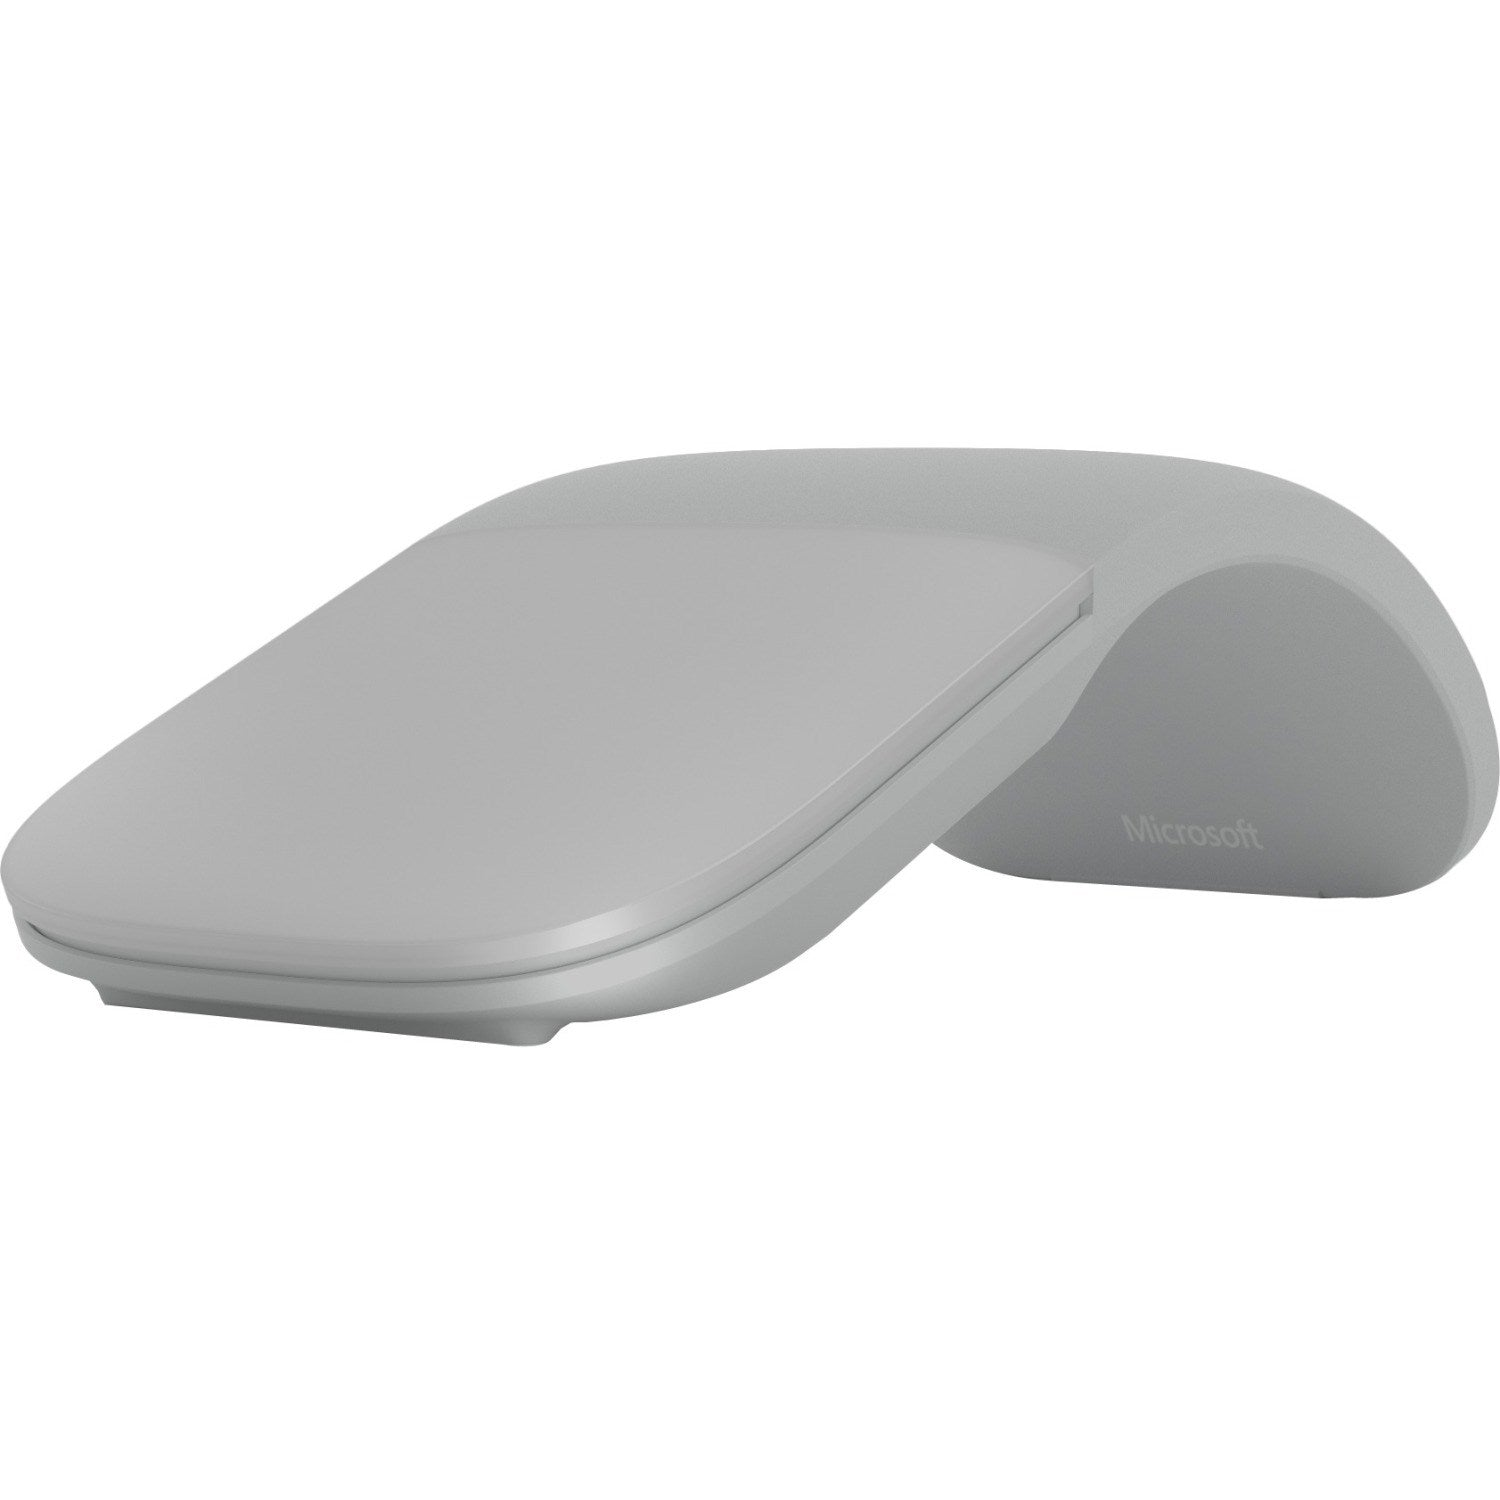 Microsoft Surface Arc Wireless Mouse (Light Grey)Commerical Model)